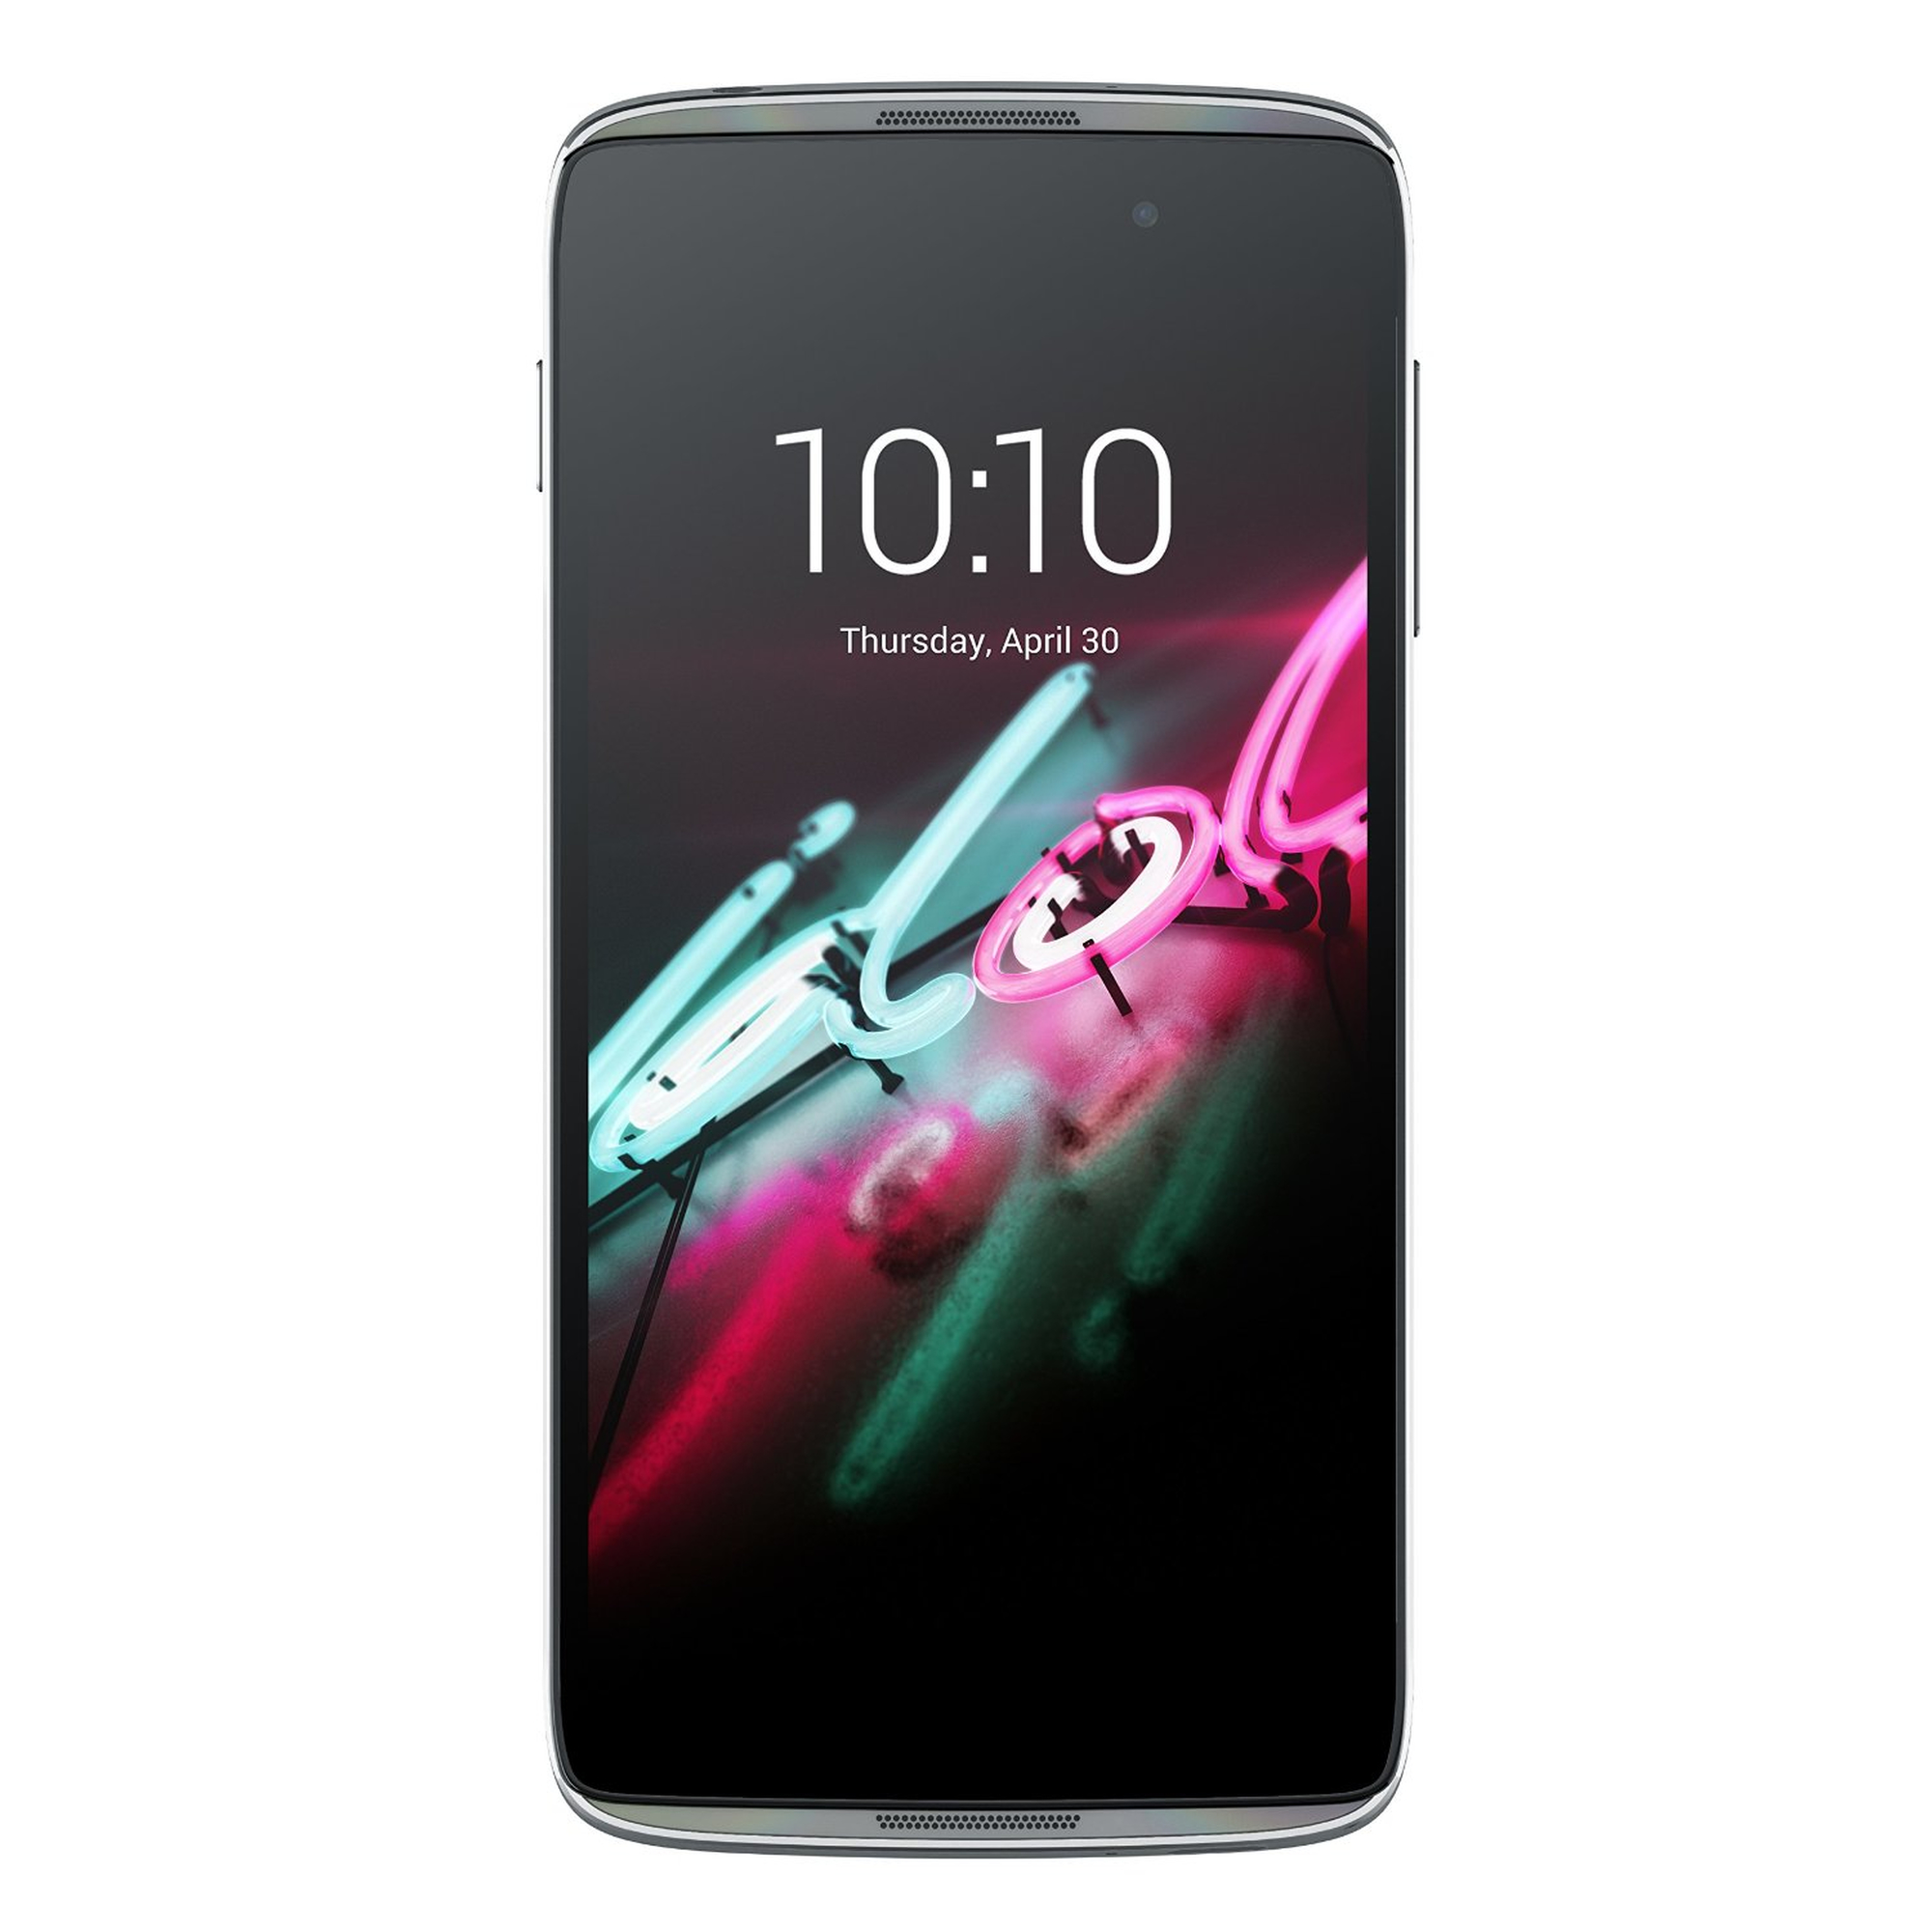 Alcatel Onetouch Idol 3 Smartphone Quad Core Dual-SIM, 16GB) dark grey